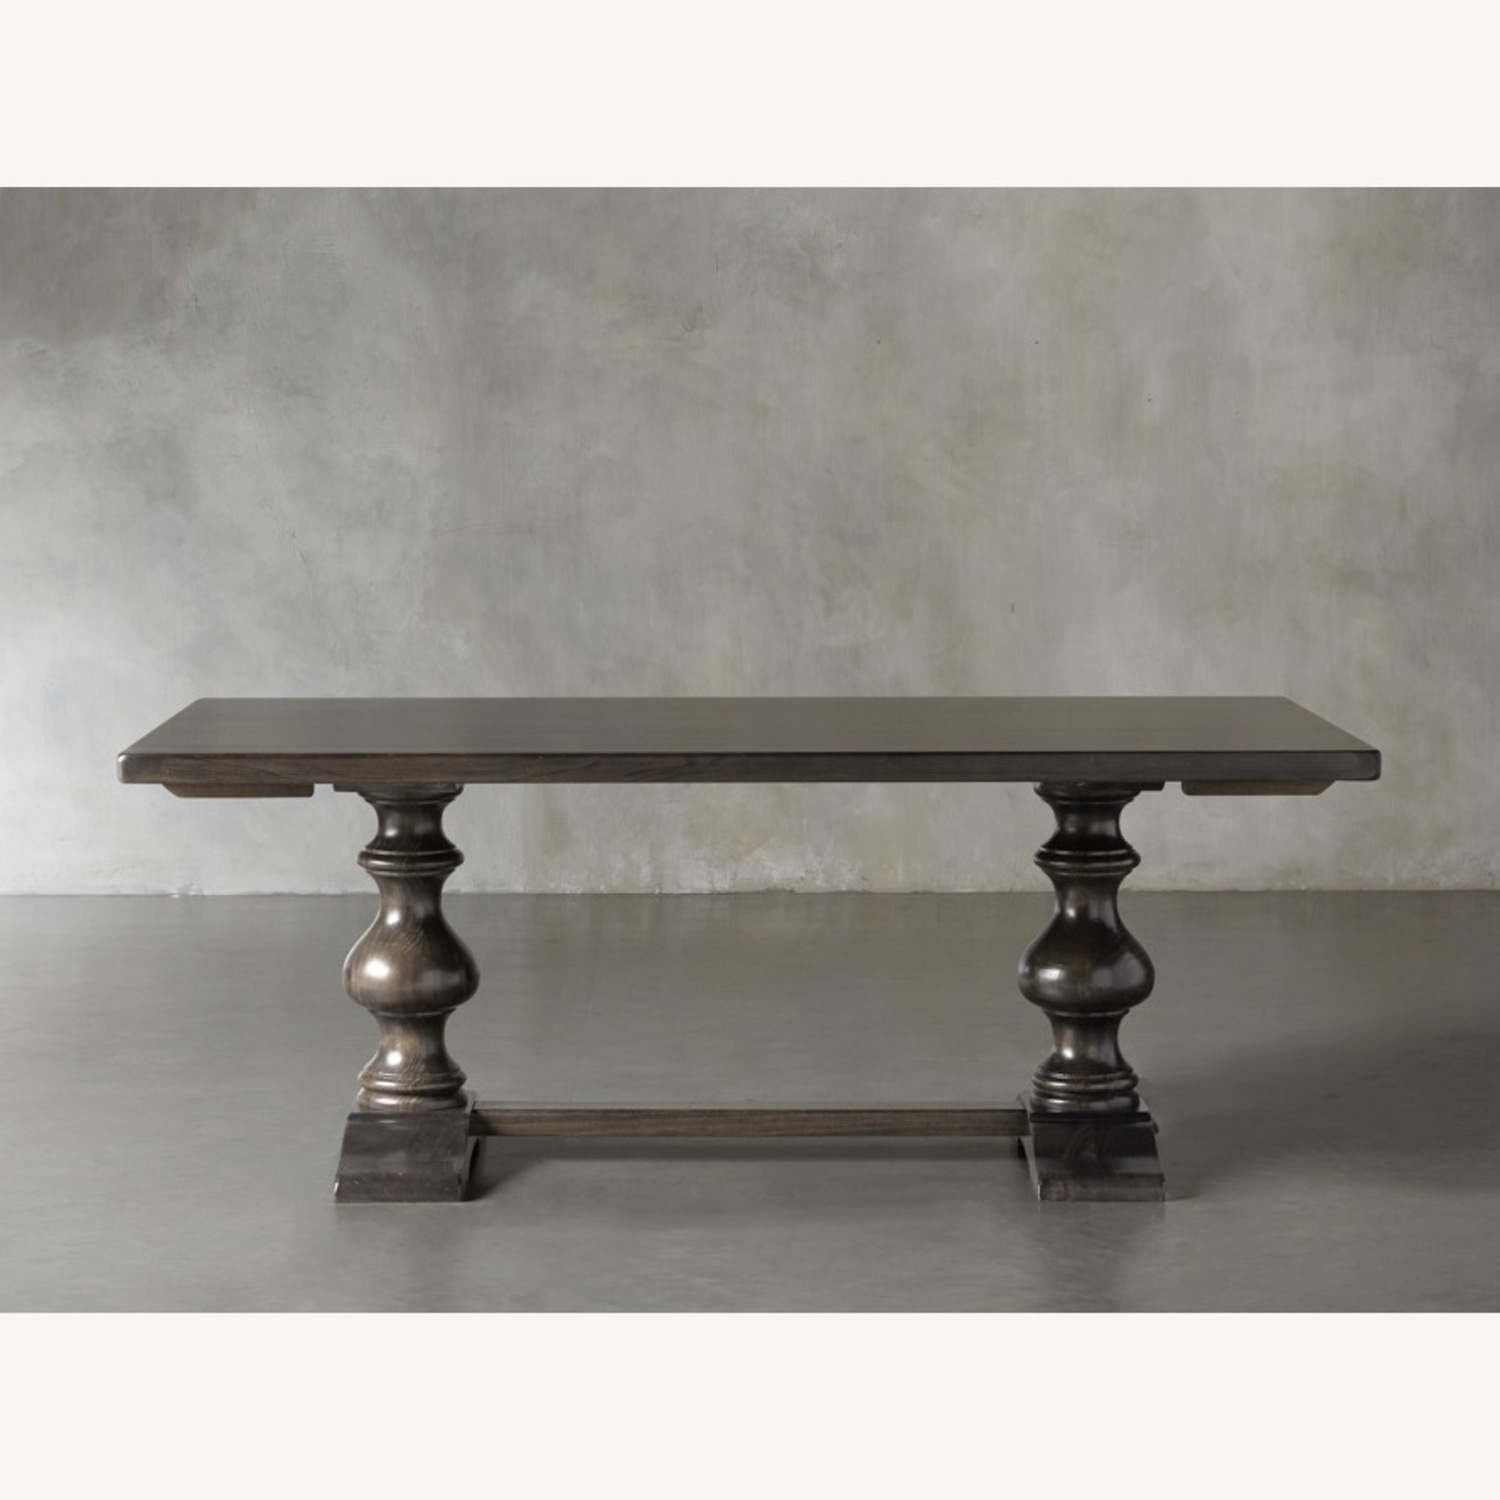 Arhaus Tuscany Extension Dining Table - image-1